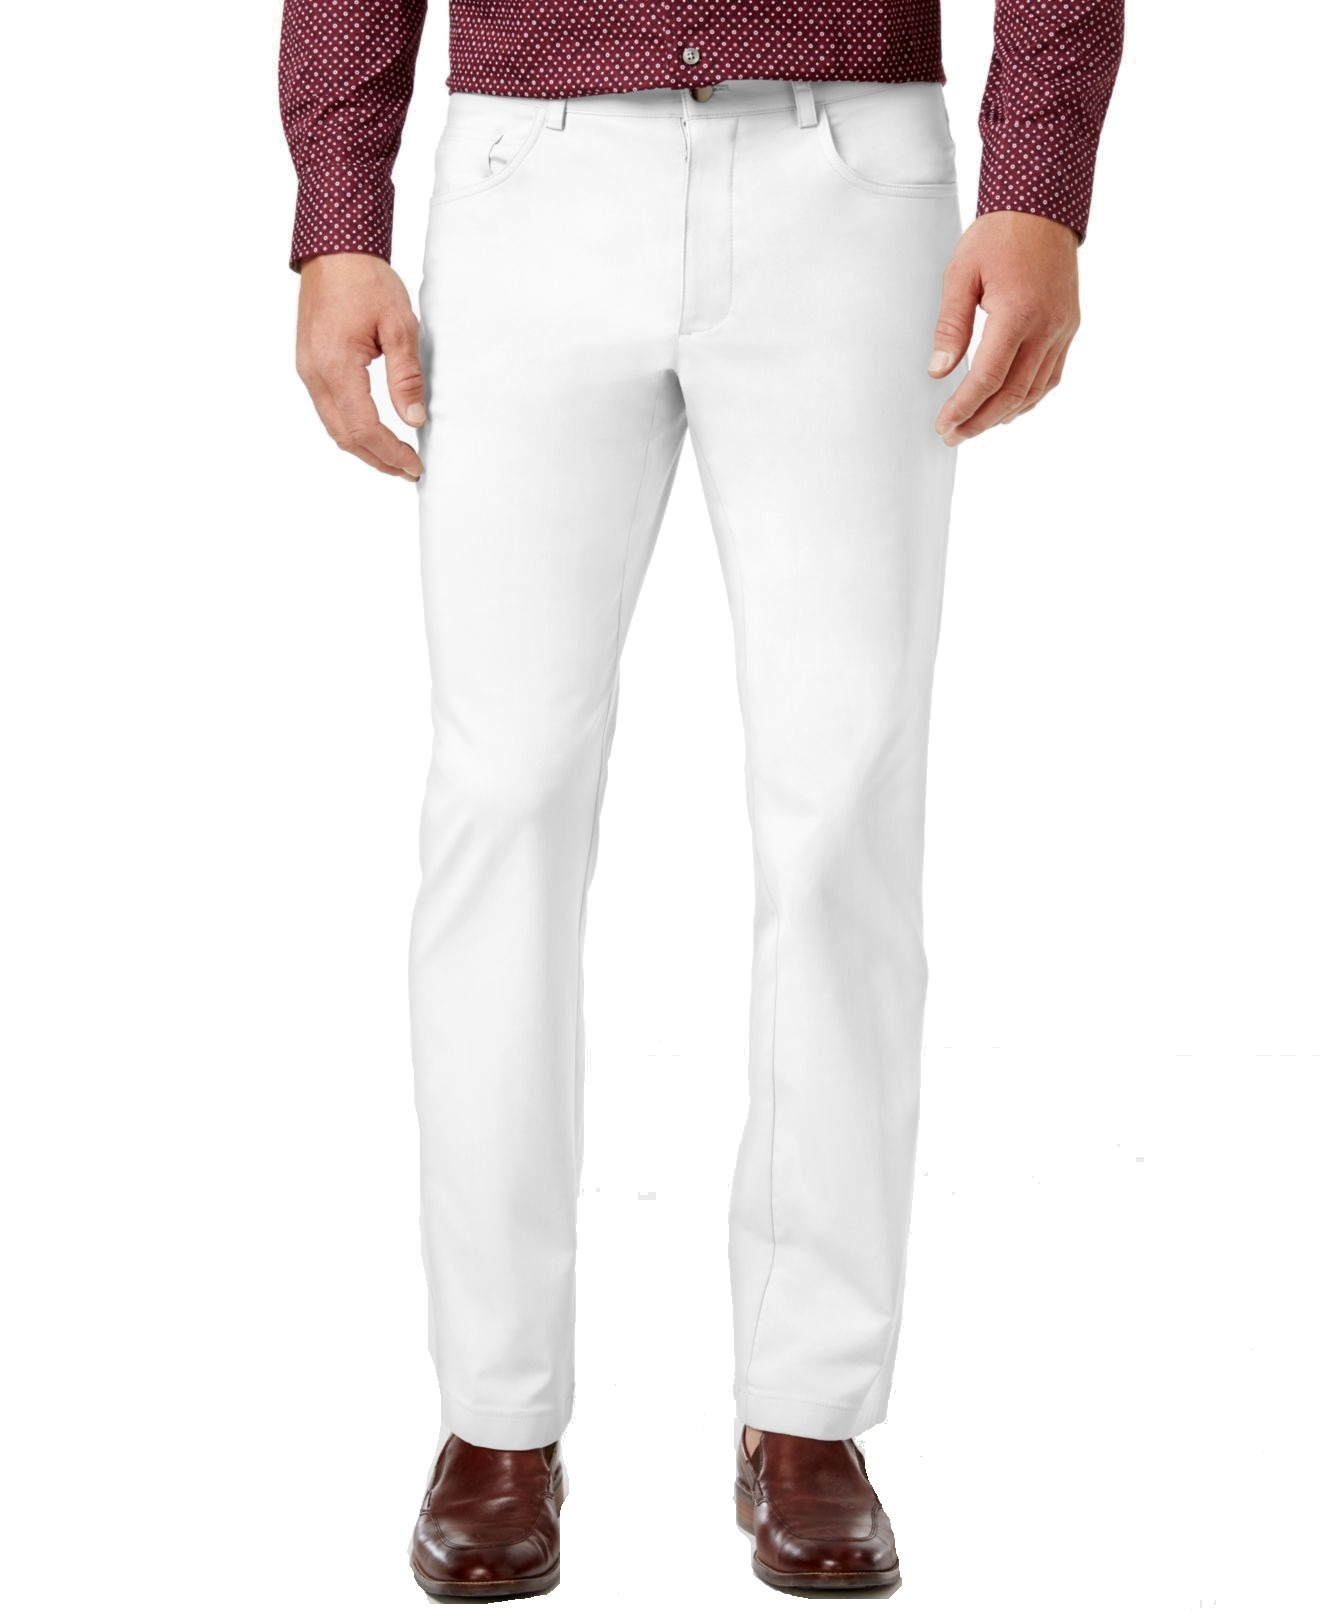 INC-NEW-White-Mens-Size-32X32-Slim-Fit-Khakis-Chinos-Stretch-Pants